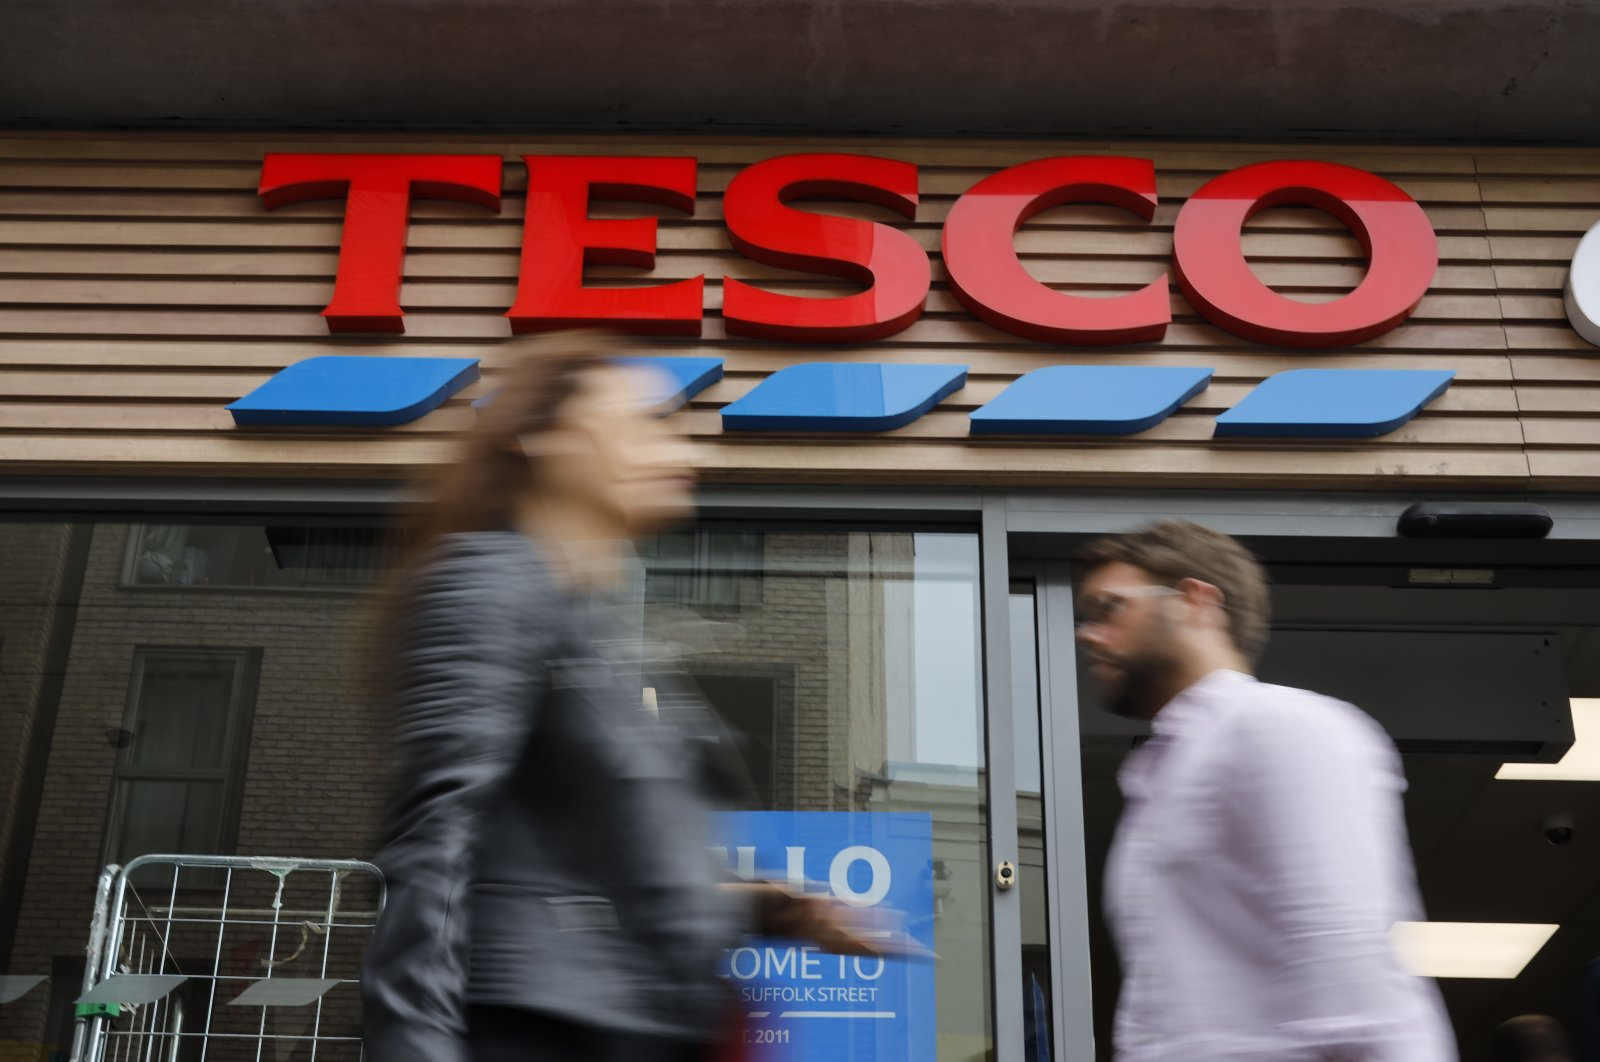 People walk past at a Tesco Express in central London, U.K., Sept. 30, 2019. (AFP Photo)